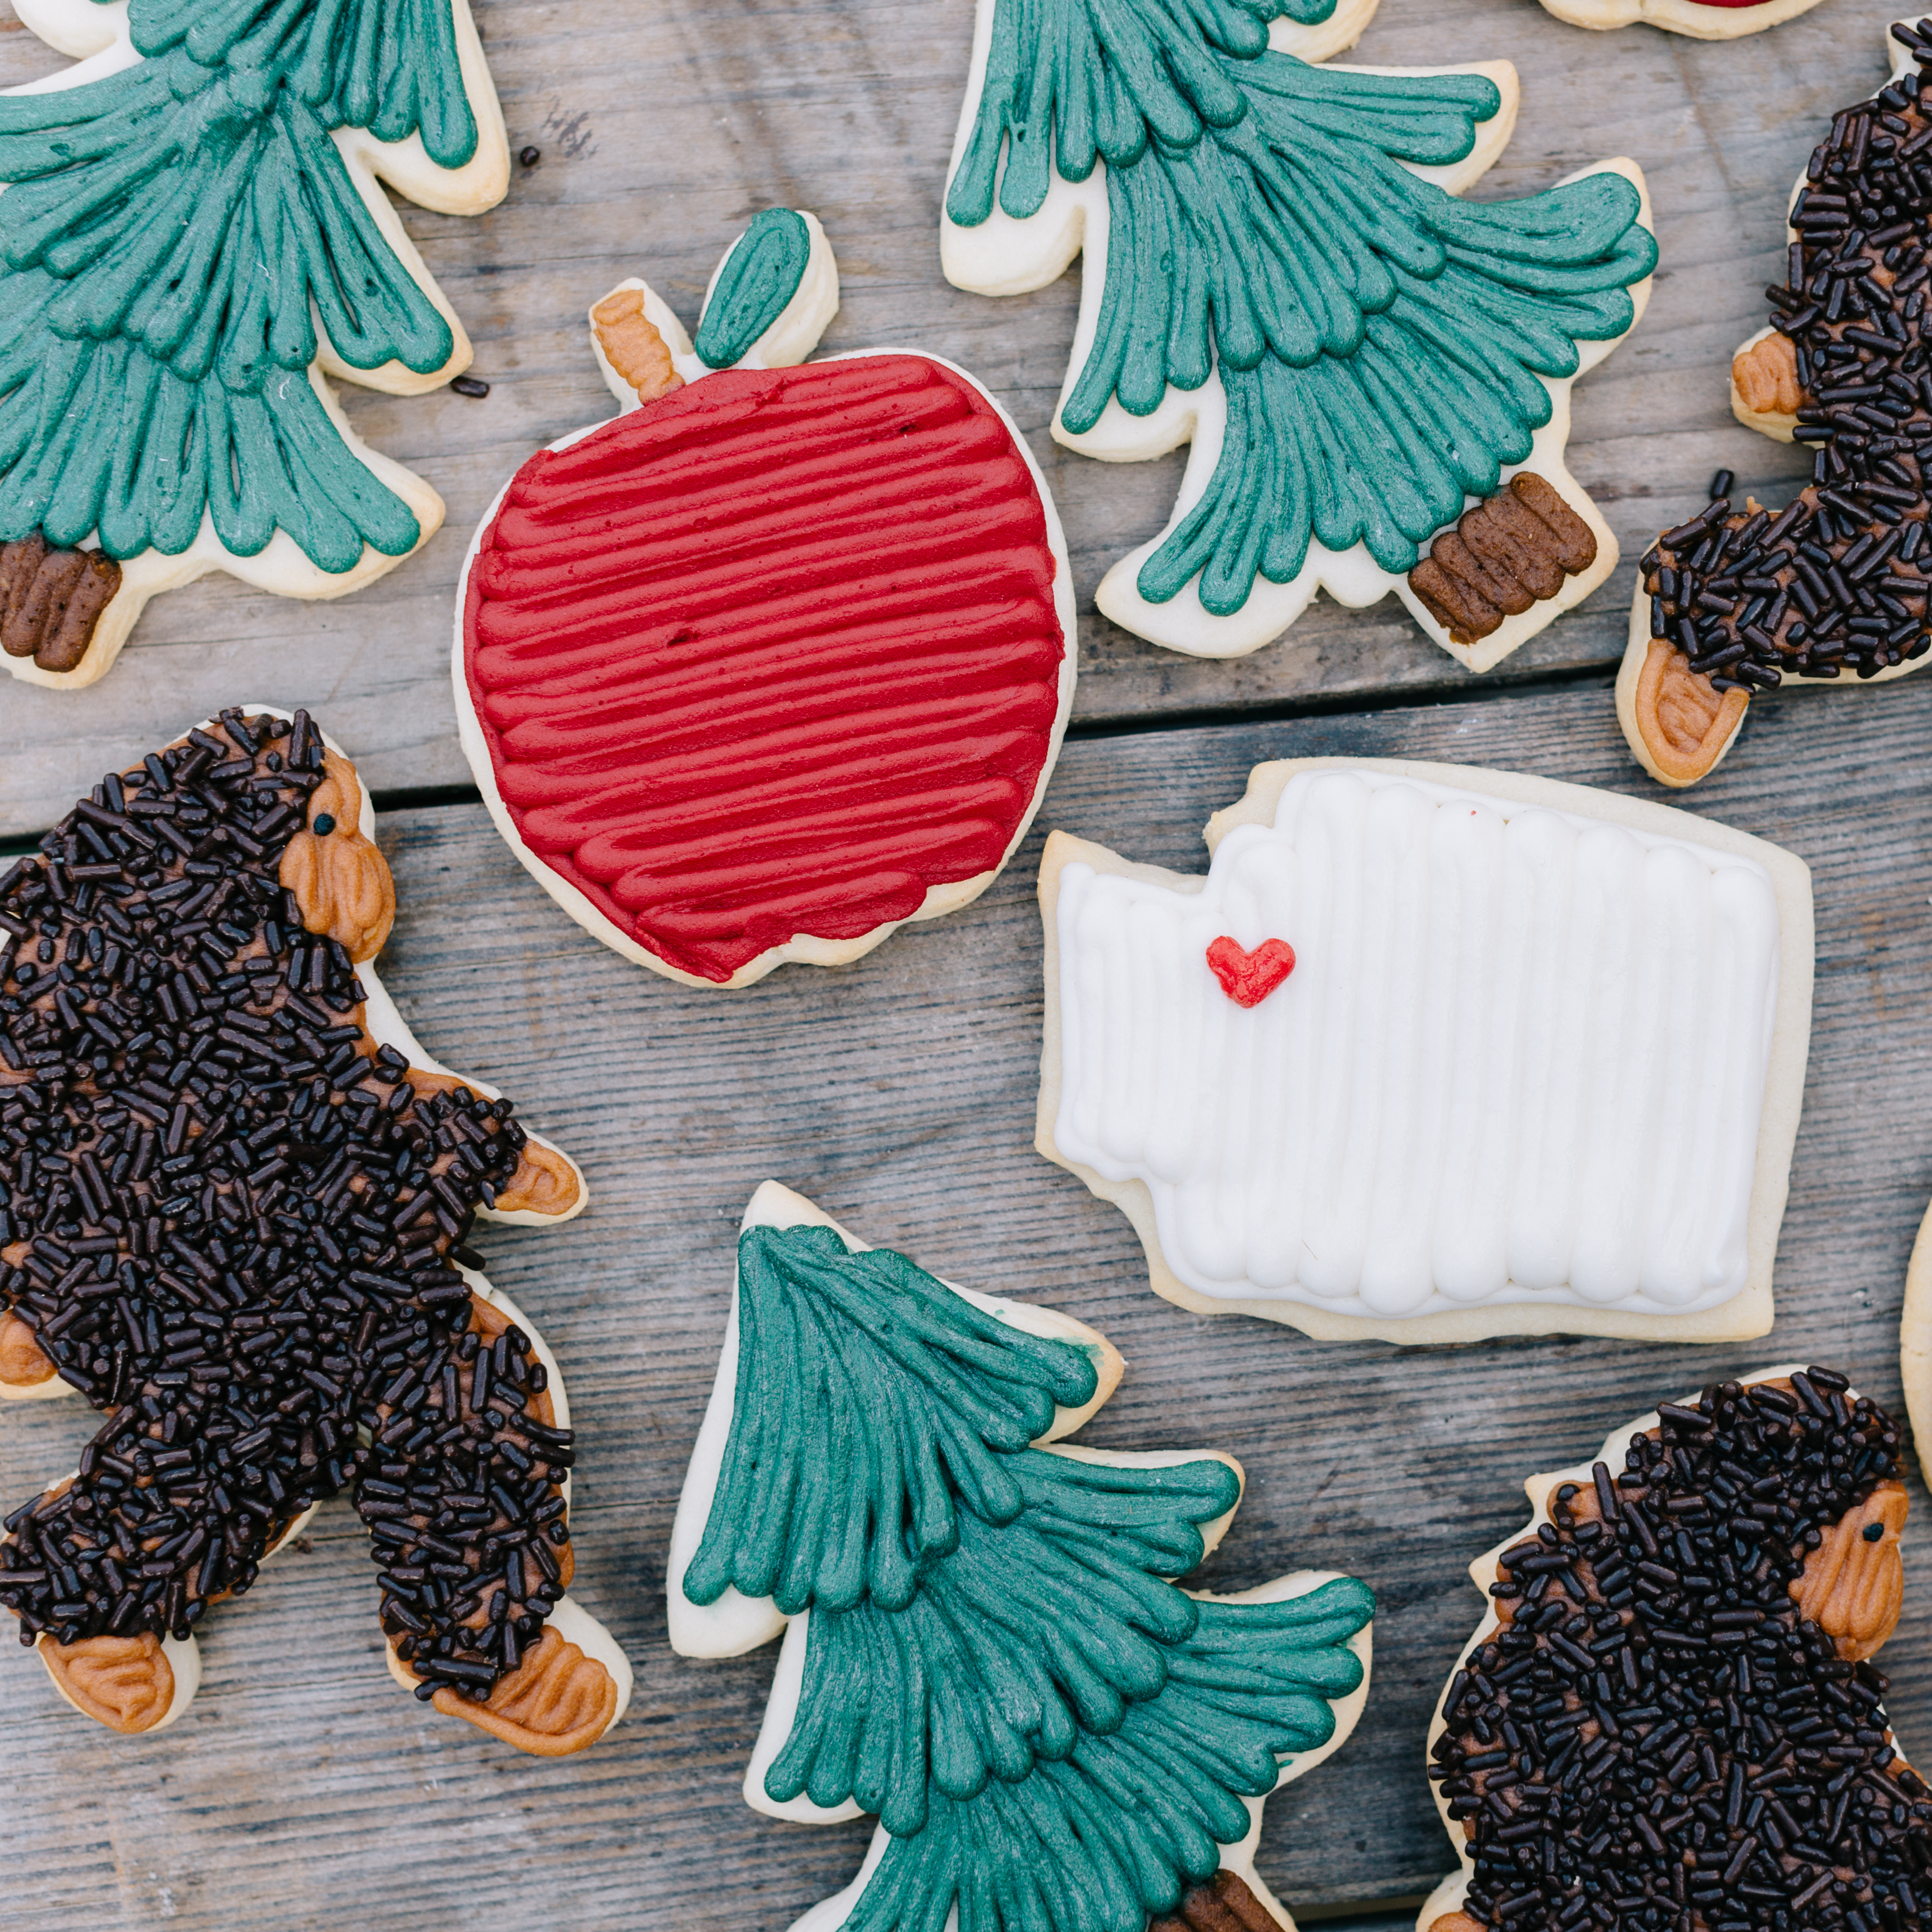 "Jenny Cookies recently released her #PNW inspired treats and we are saying ""Ahhhhhh HOW CUTE!"" We are proud PNW'ers here at Seattle Refined so we think these are the cutest treats west of the Mississippi and just had to share! Be sure to follow Jenny on instagram where she posts tons of cute pics of her cookies, cakes, and confections! @jennycookies. Jenny Cookies Bake Shop is located in Lake Stevens, WA at 12420 20th St NE, Lake Stevens. (Image: Kelly Clare Photography)"